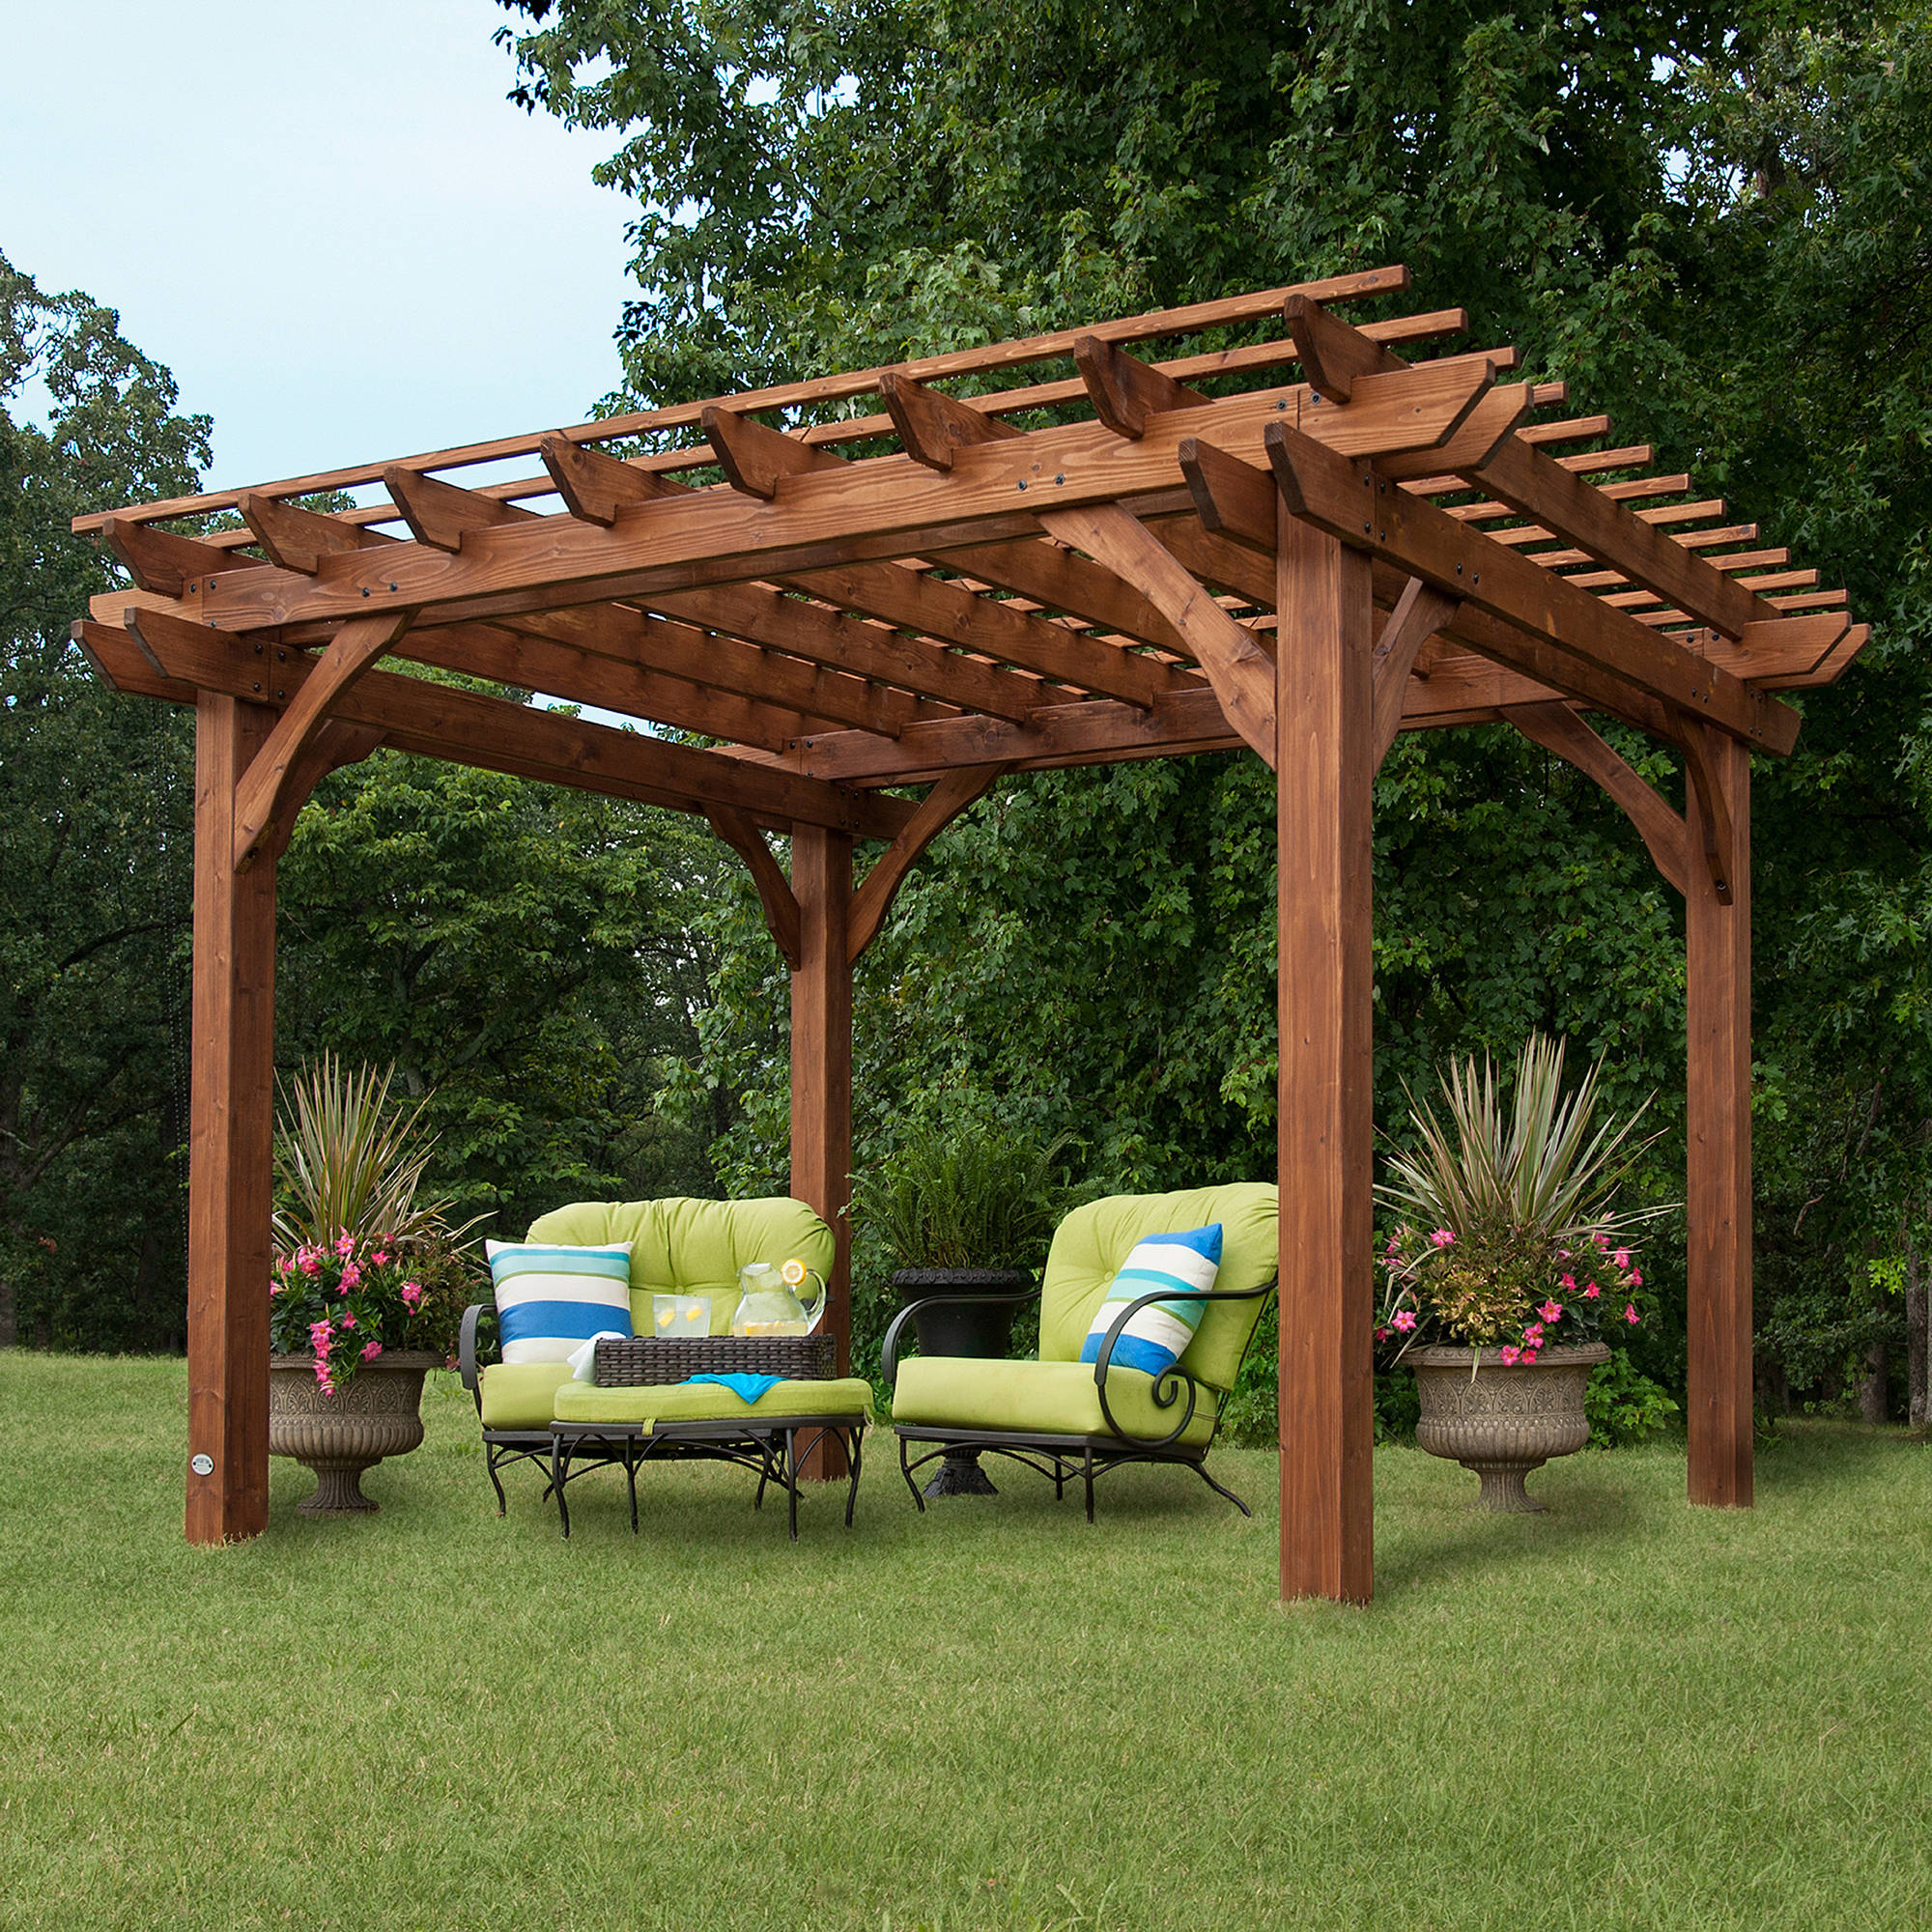 Backyard Discovery 12' x 10' Cedar Pergola, Brown by Leisure Time Products